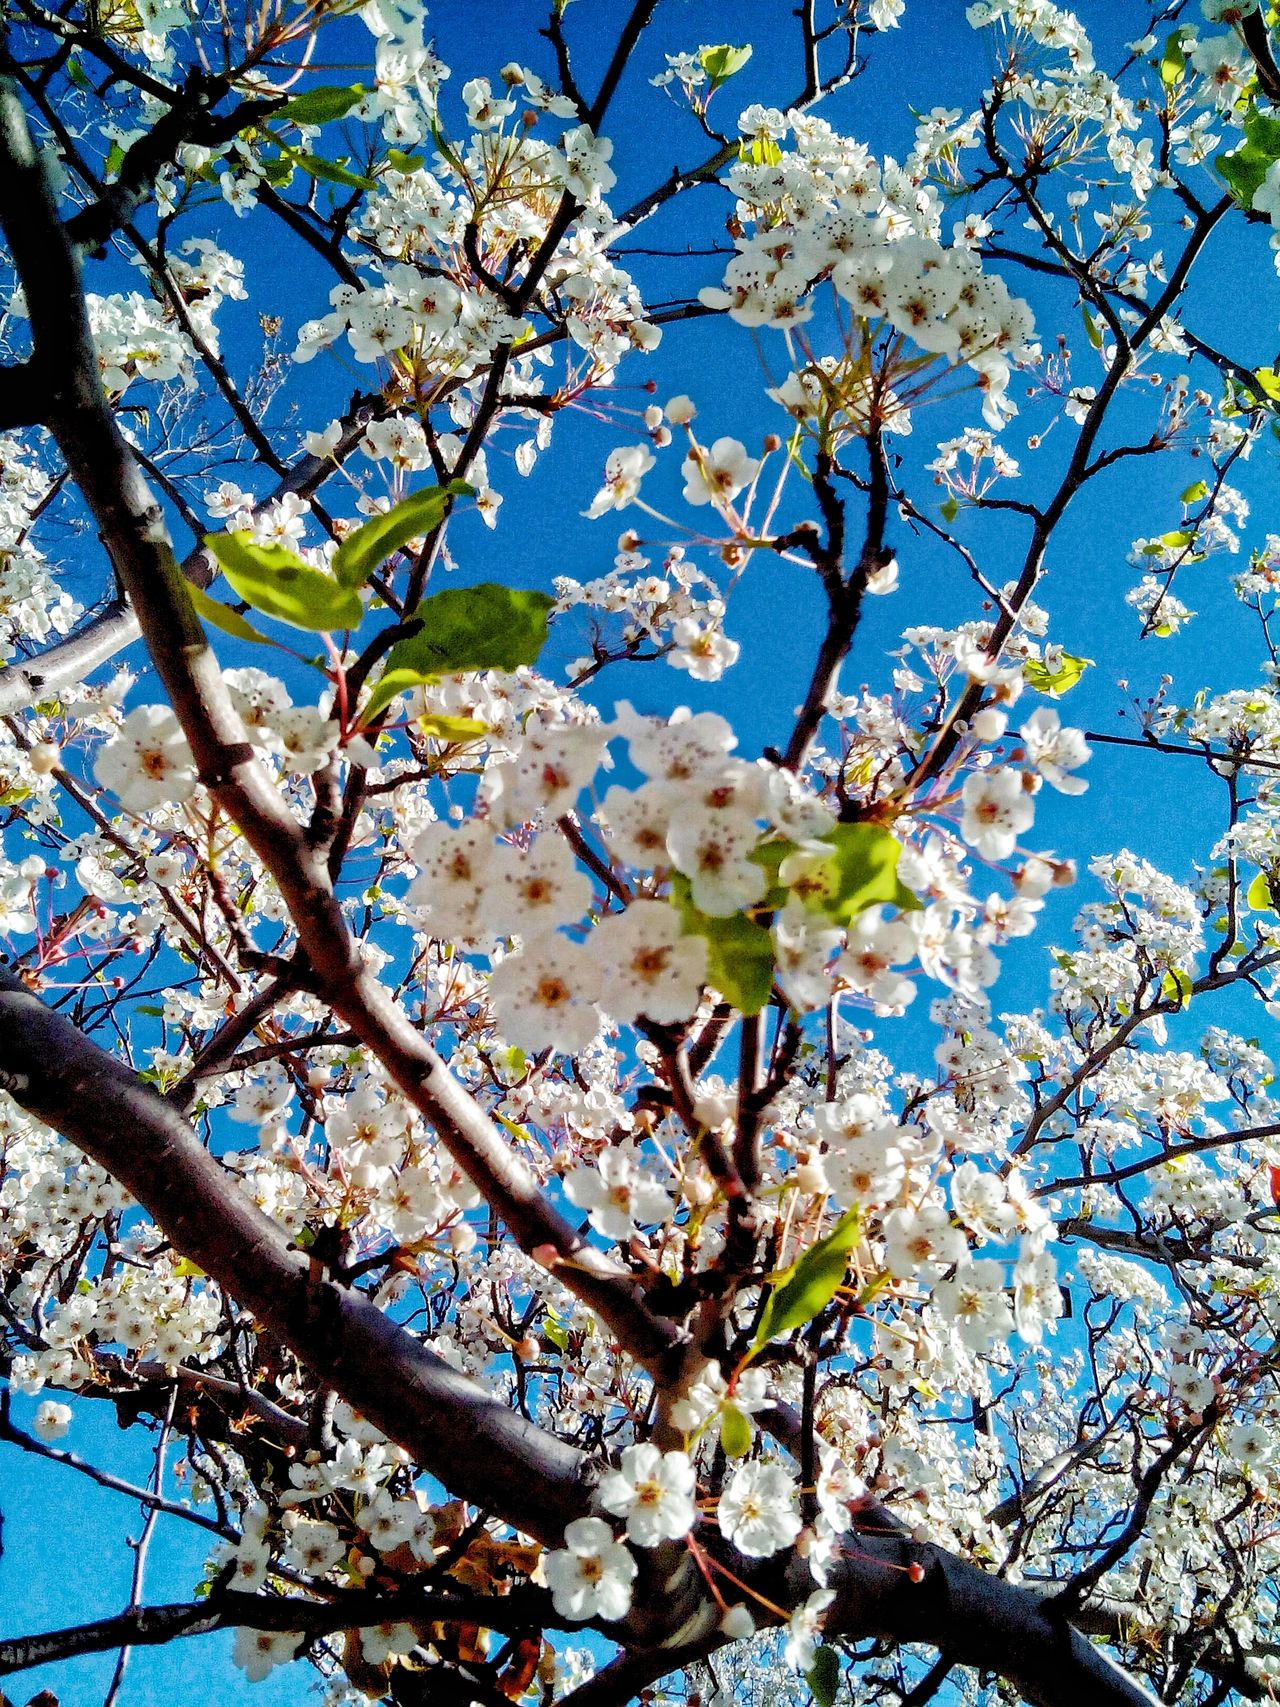 Beauty In Nature Blossom Branch Clear Sky Close-up Day Flower Fragility Freshness Growth Low Angle View Nature No People Outdoors Sky Springtime Sunlight Tree Twig Fresh On Eyeem